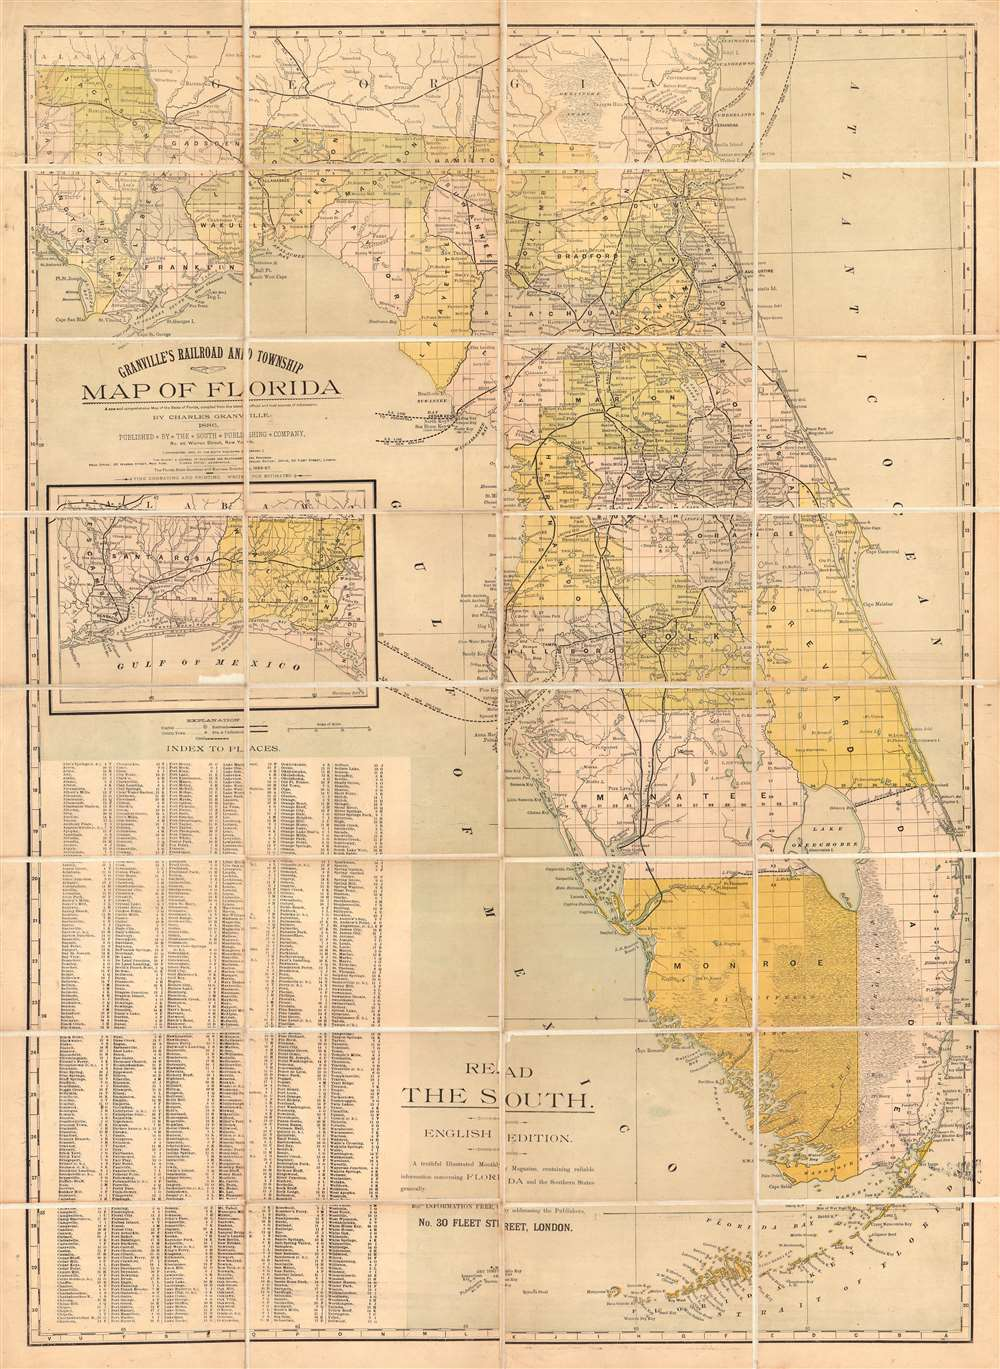 Granville's Railroad and Township Map of Florida.